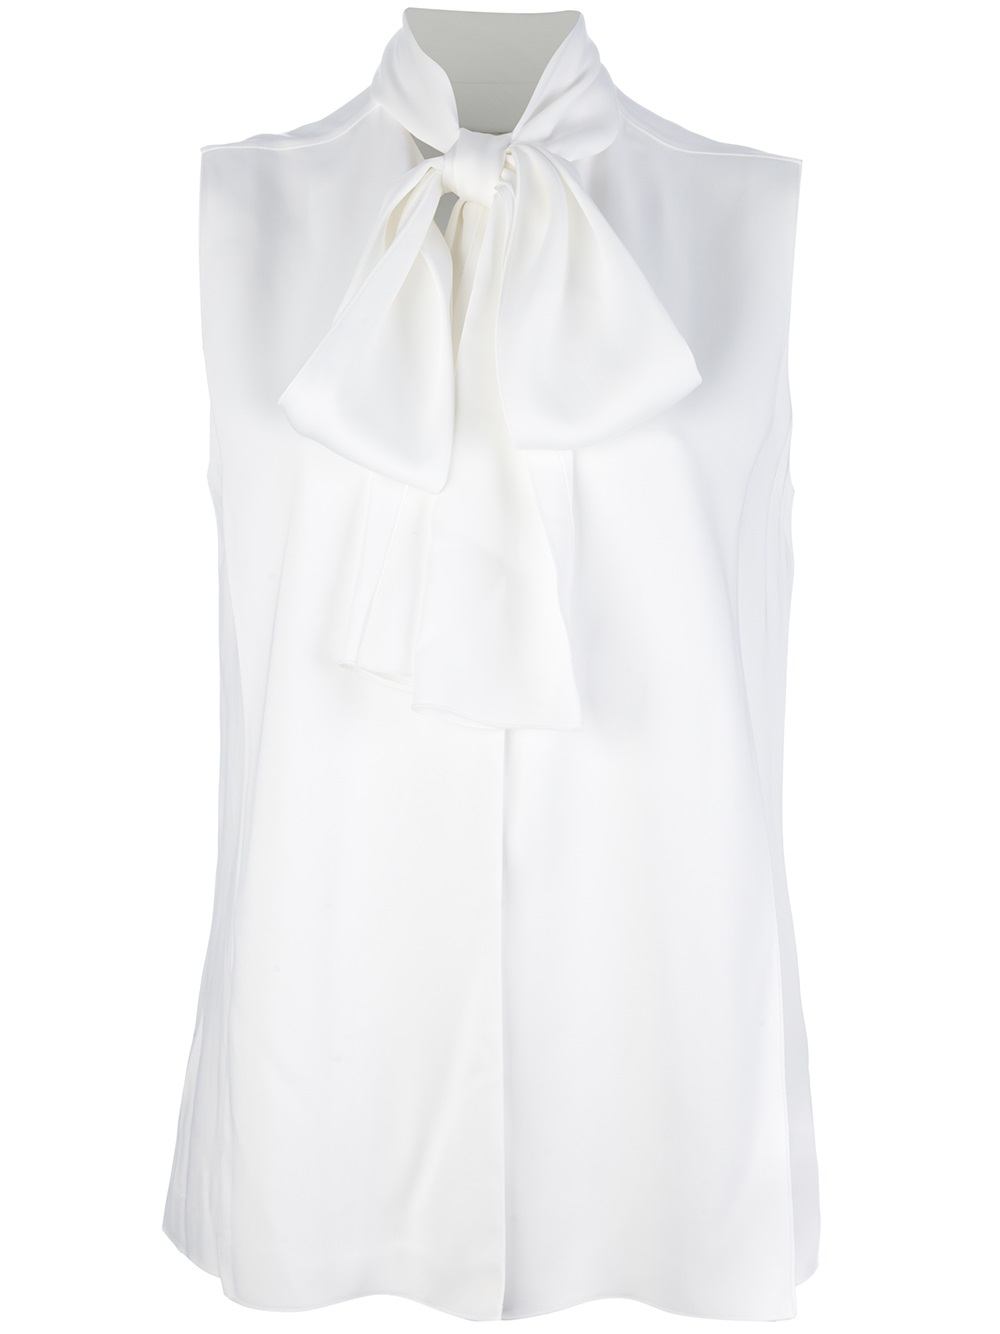 Shop white sleeveless blouse at Neiman Marcus, where you will find free shipping on the latest in fashion from top designers.